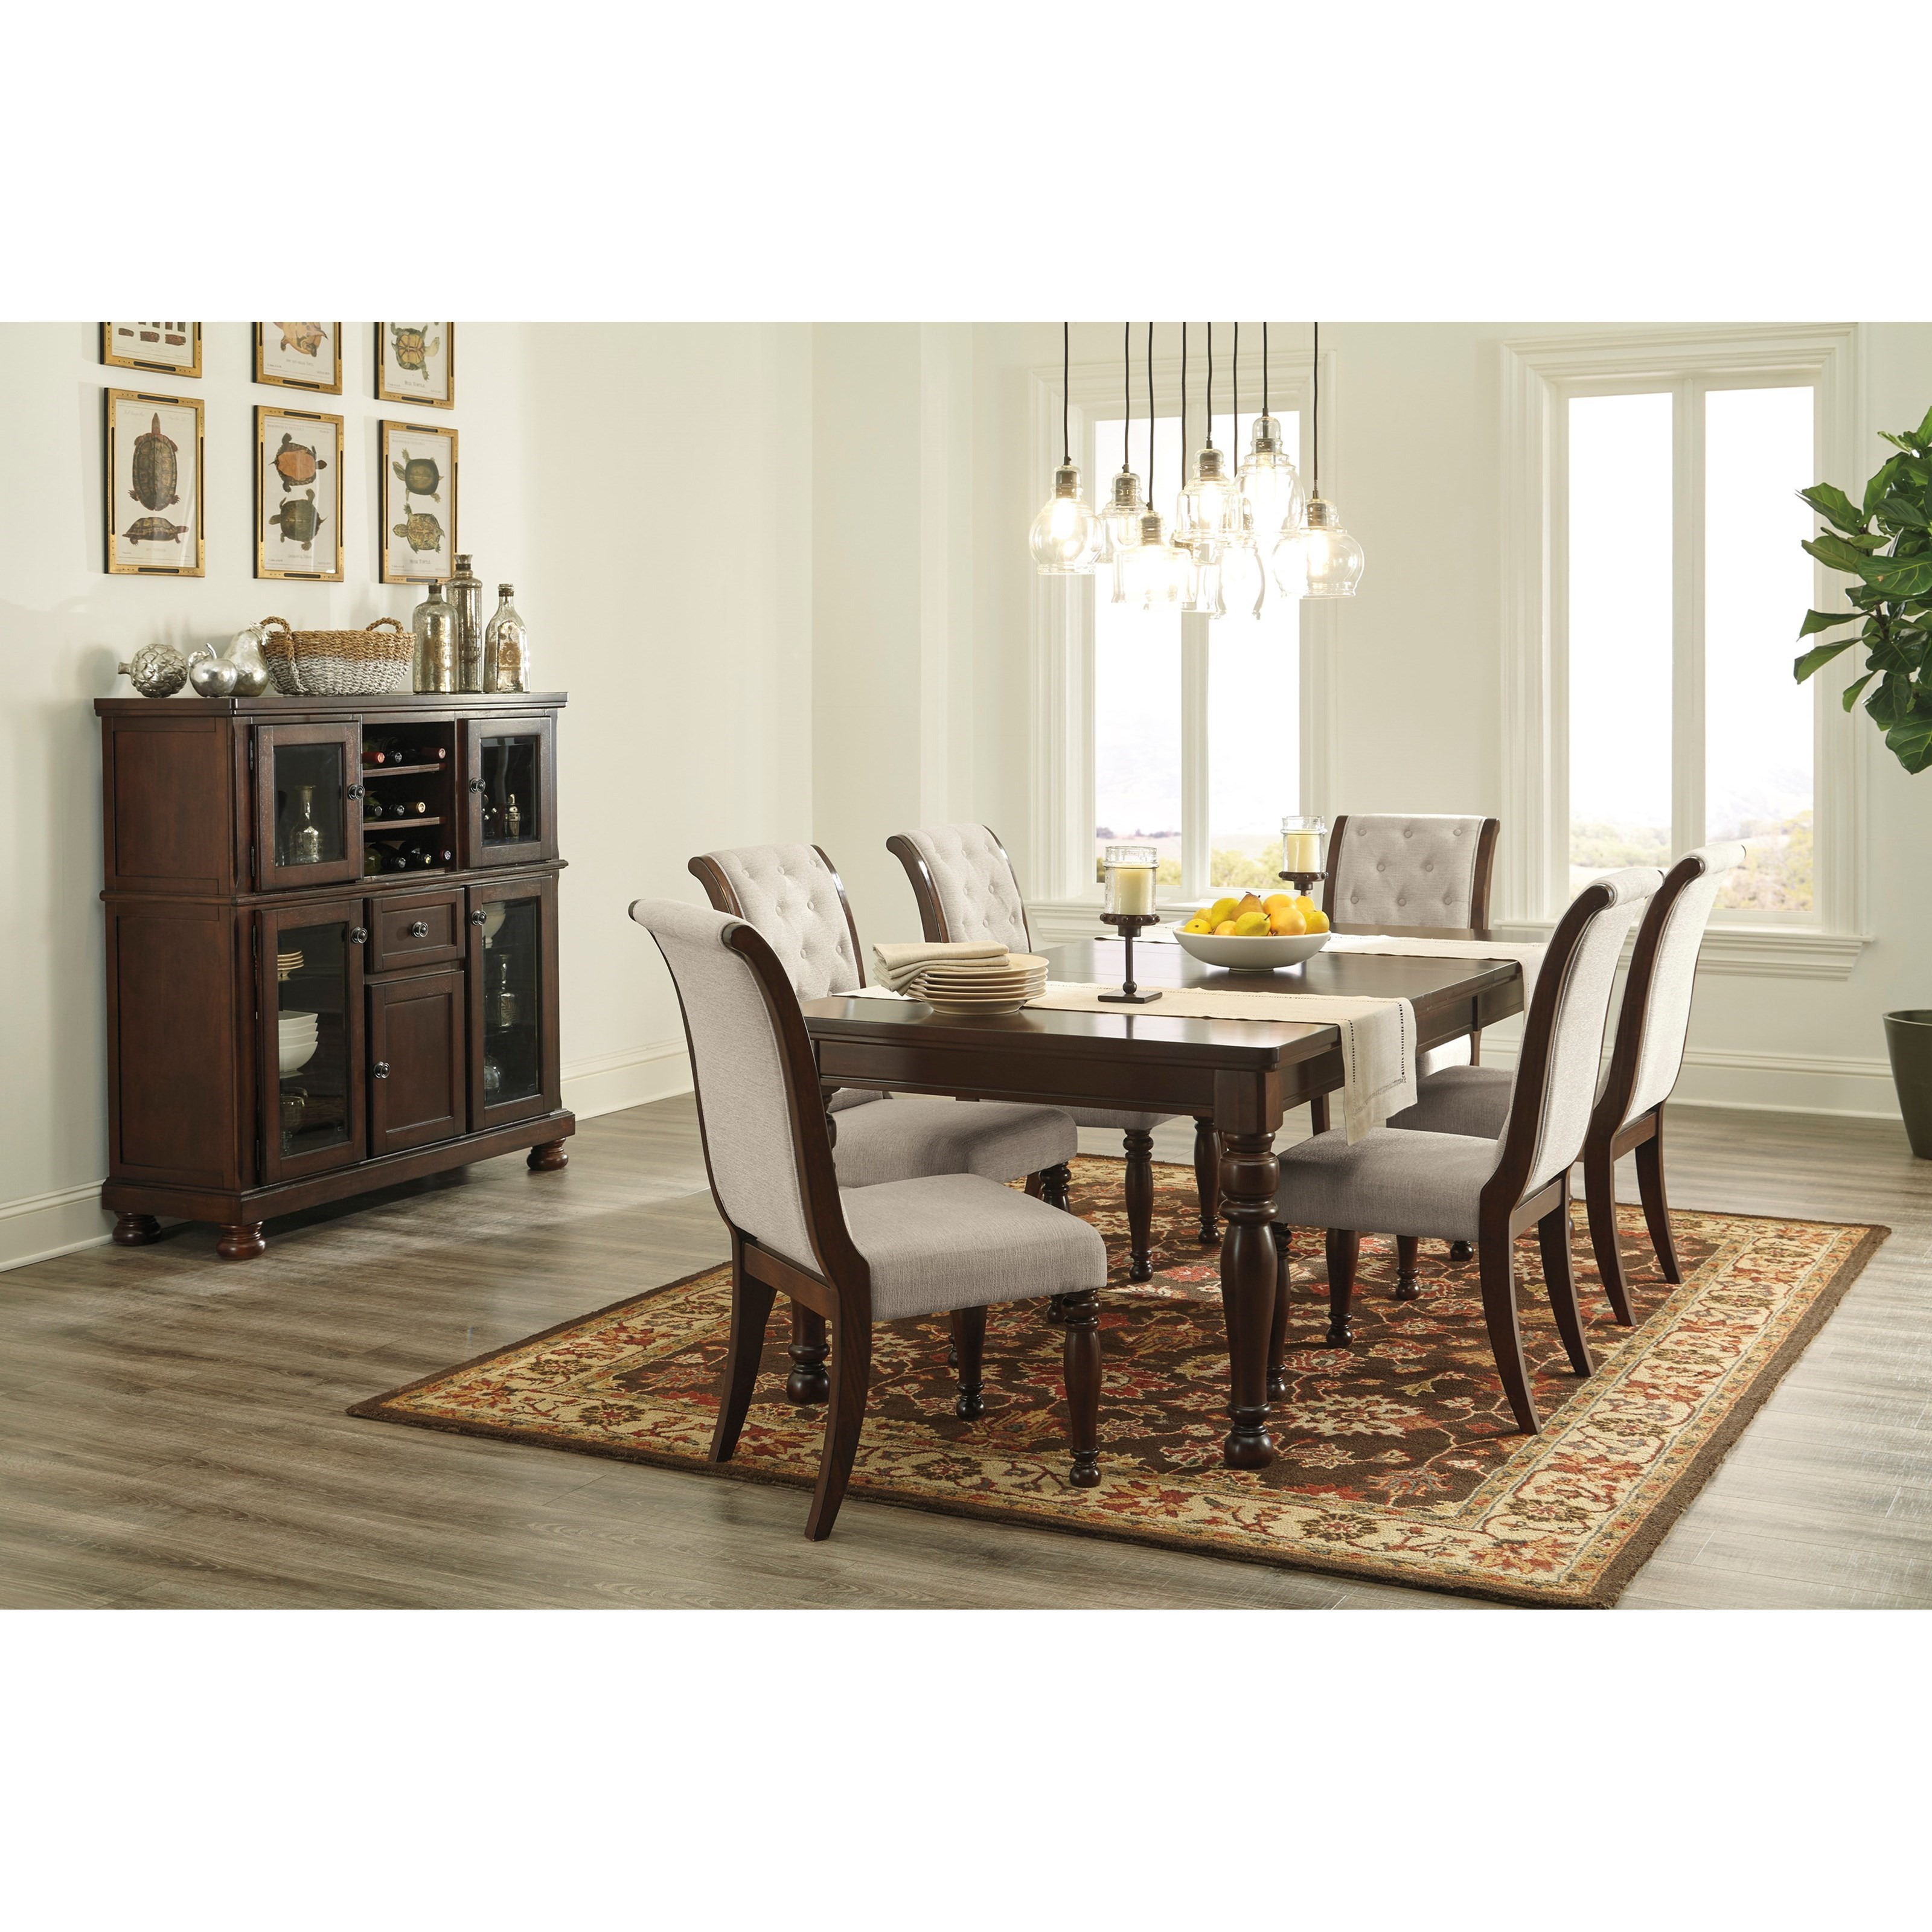 Porter Casual Dining Room Group by Ashley Furniture at Lapeer Furniture & Mattress Center